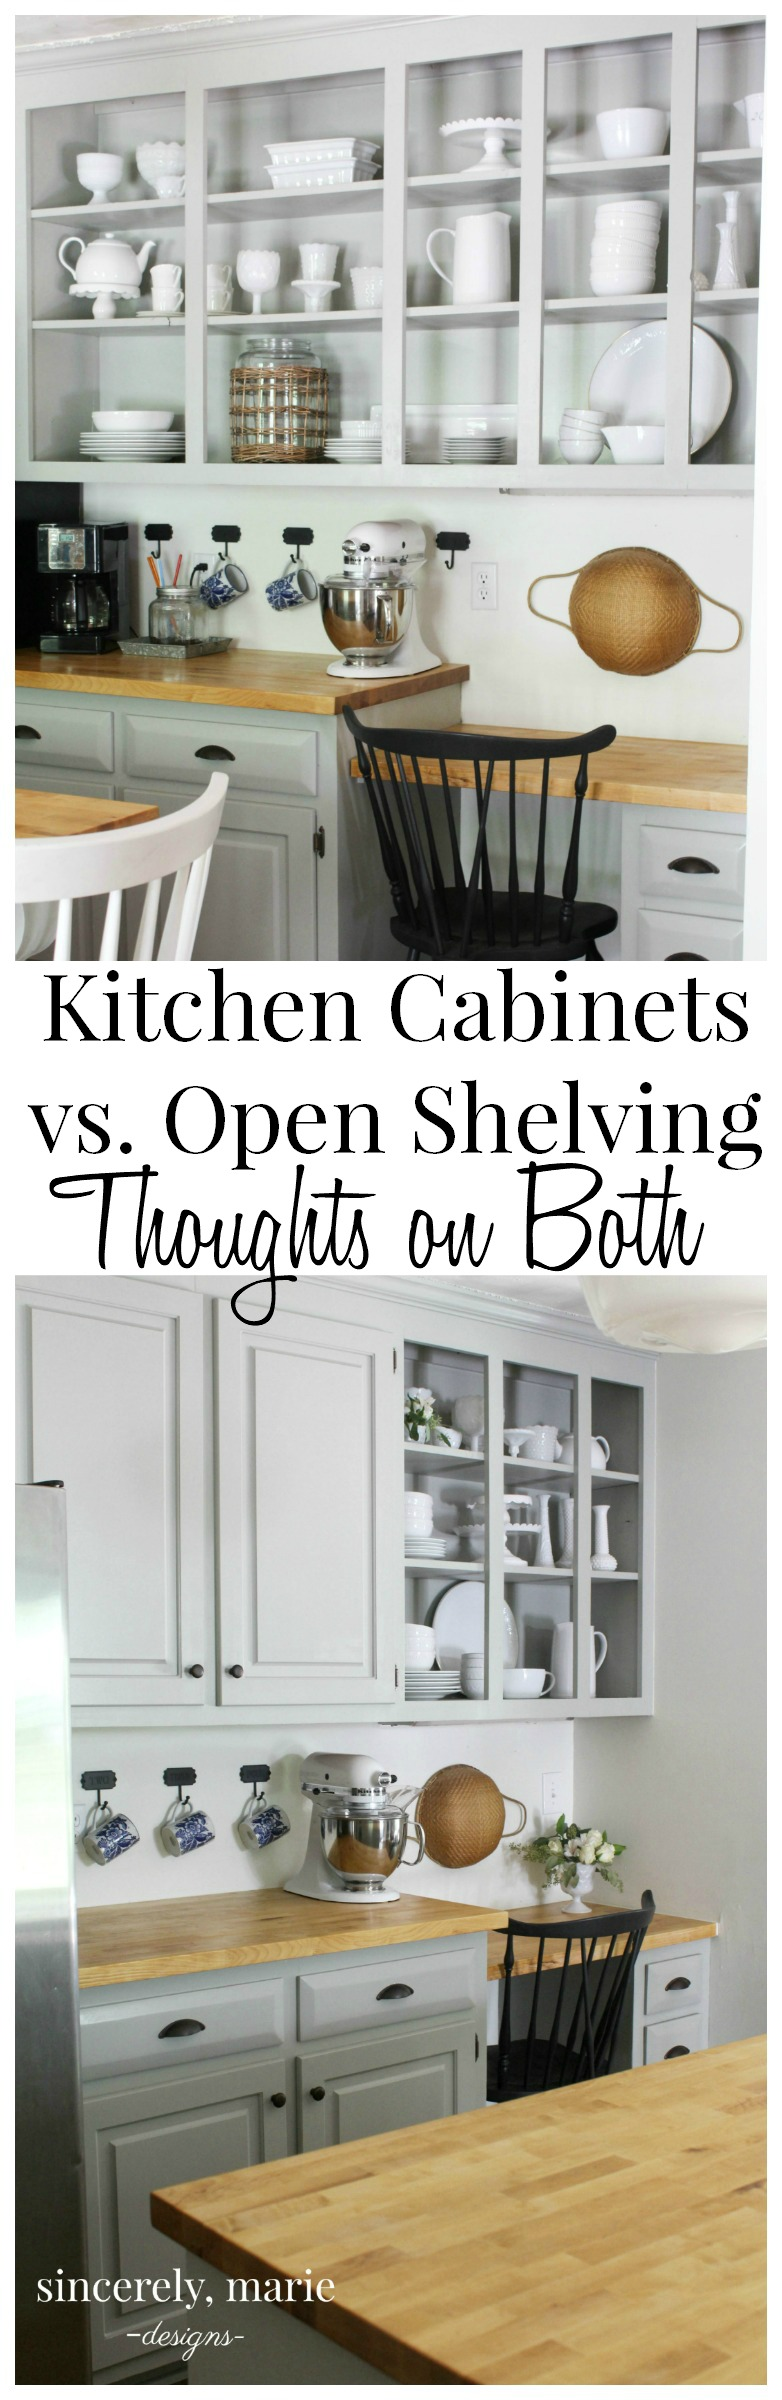 Kitchen Cabinets Vs. Open Shelving   My Thoughts On Both